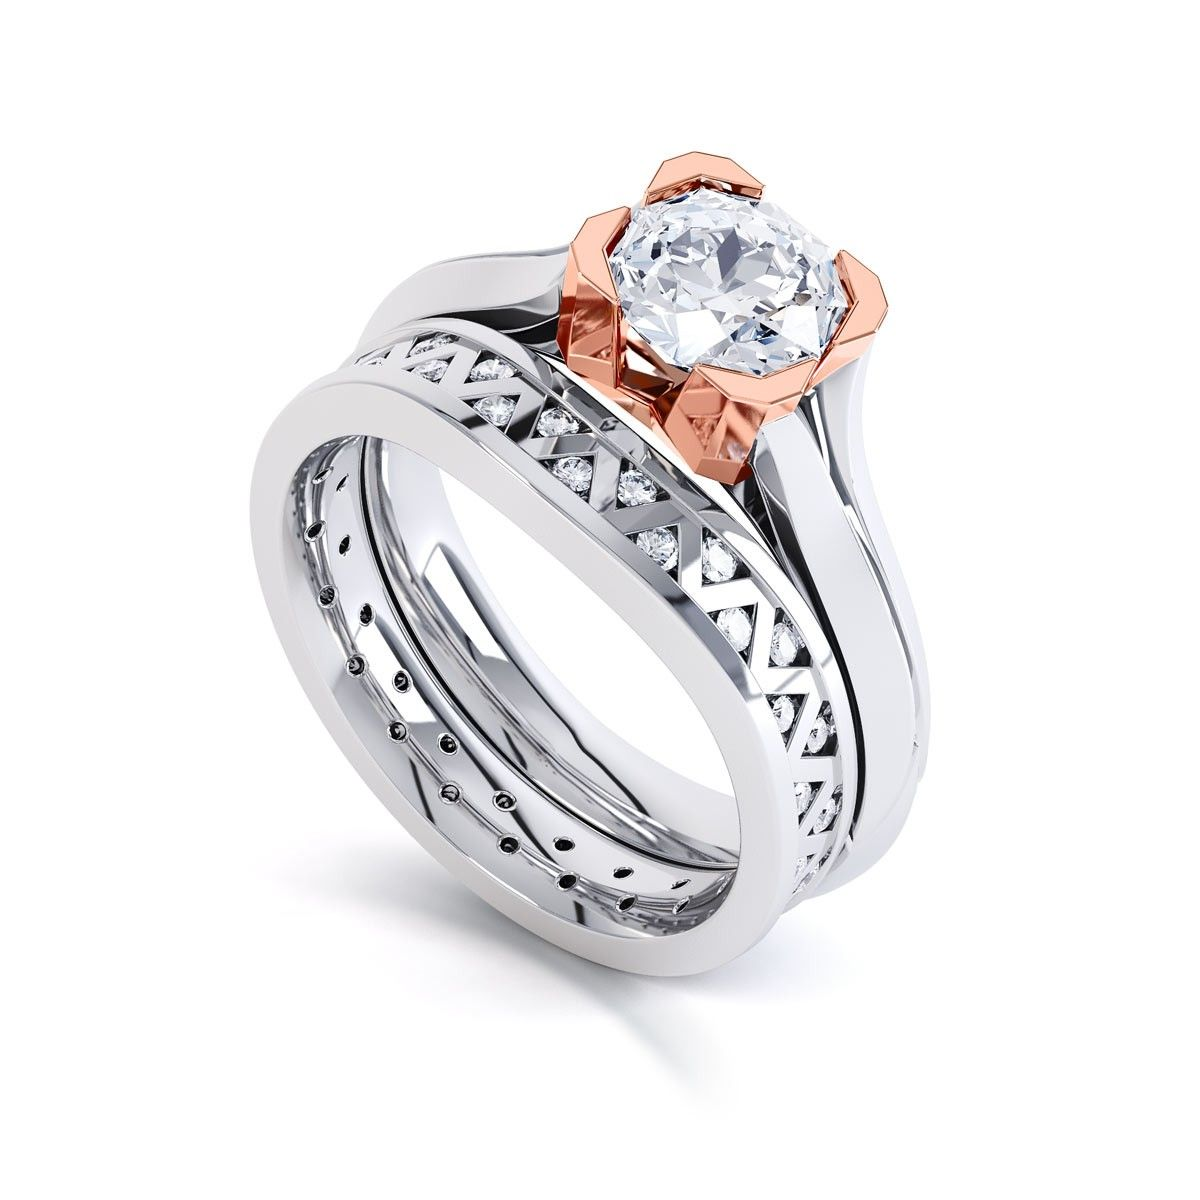 The Latest Design From Maevona The Dundee Collection Creative Engagement Rings Platinum Wedding Rings